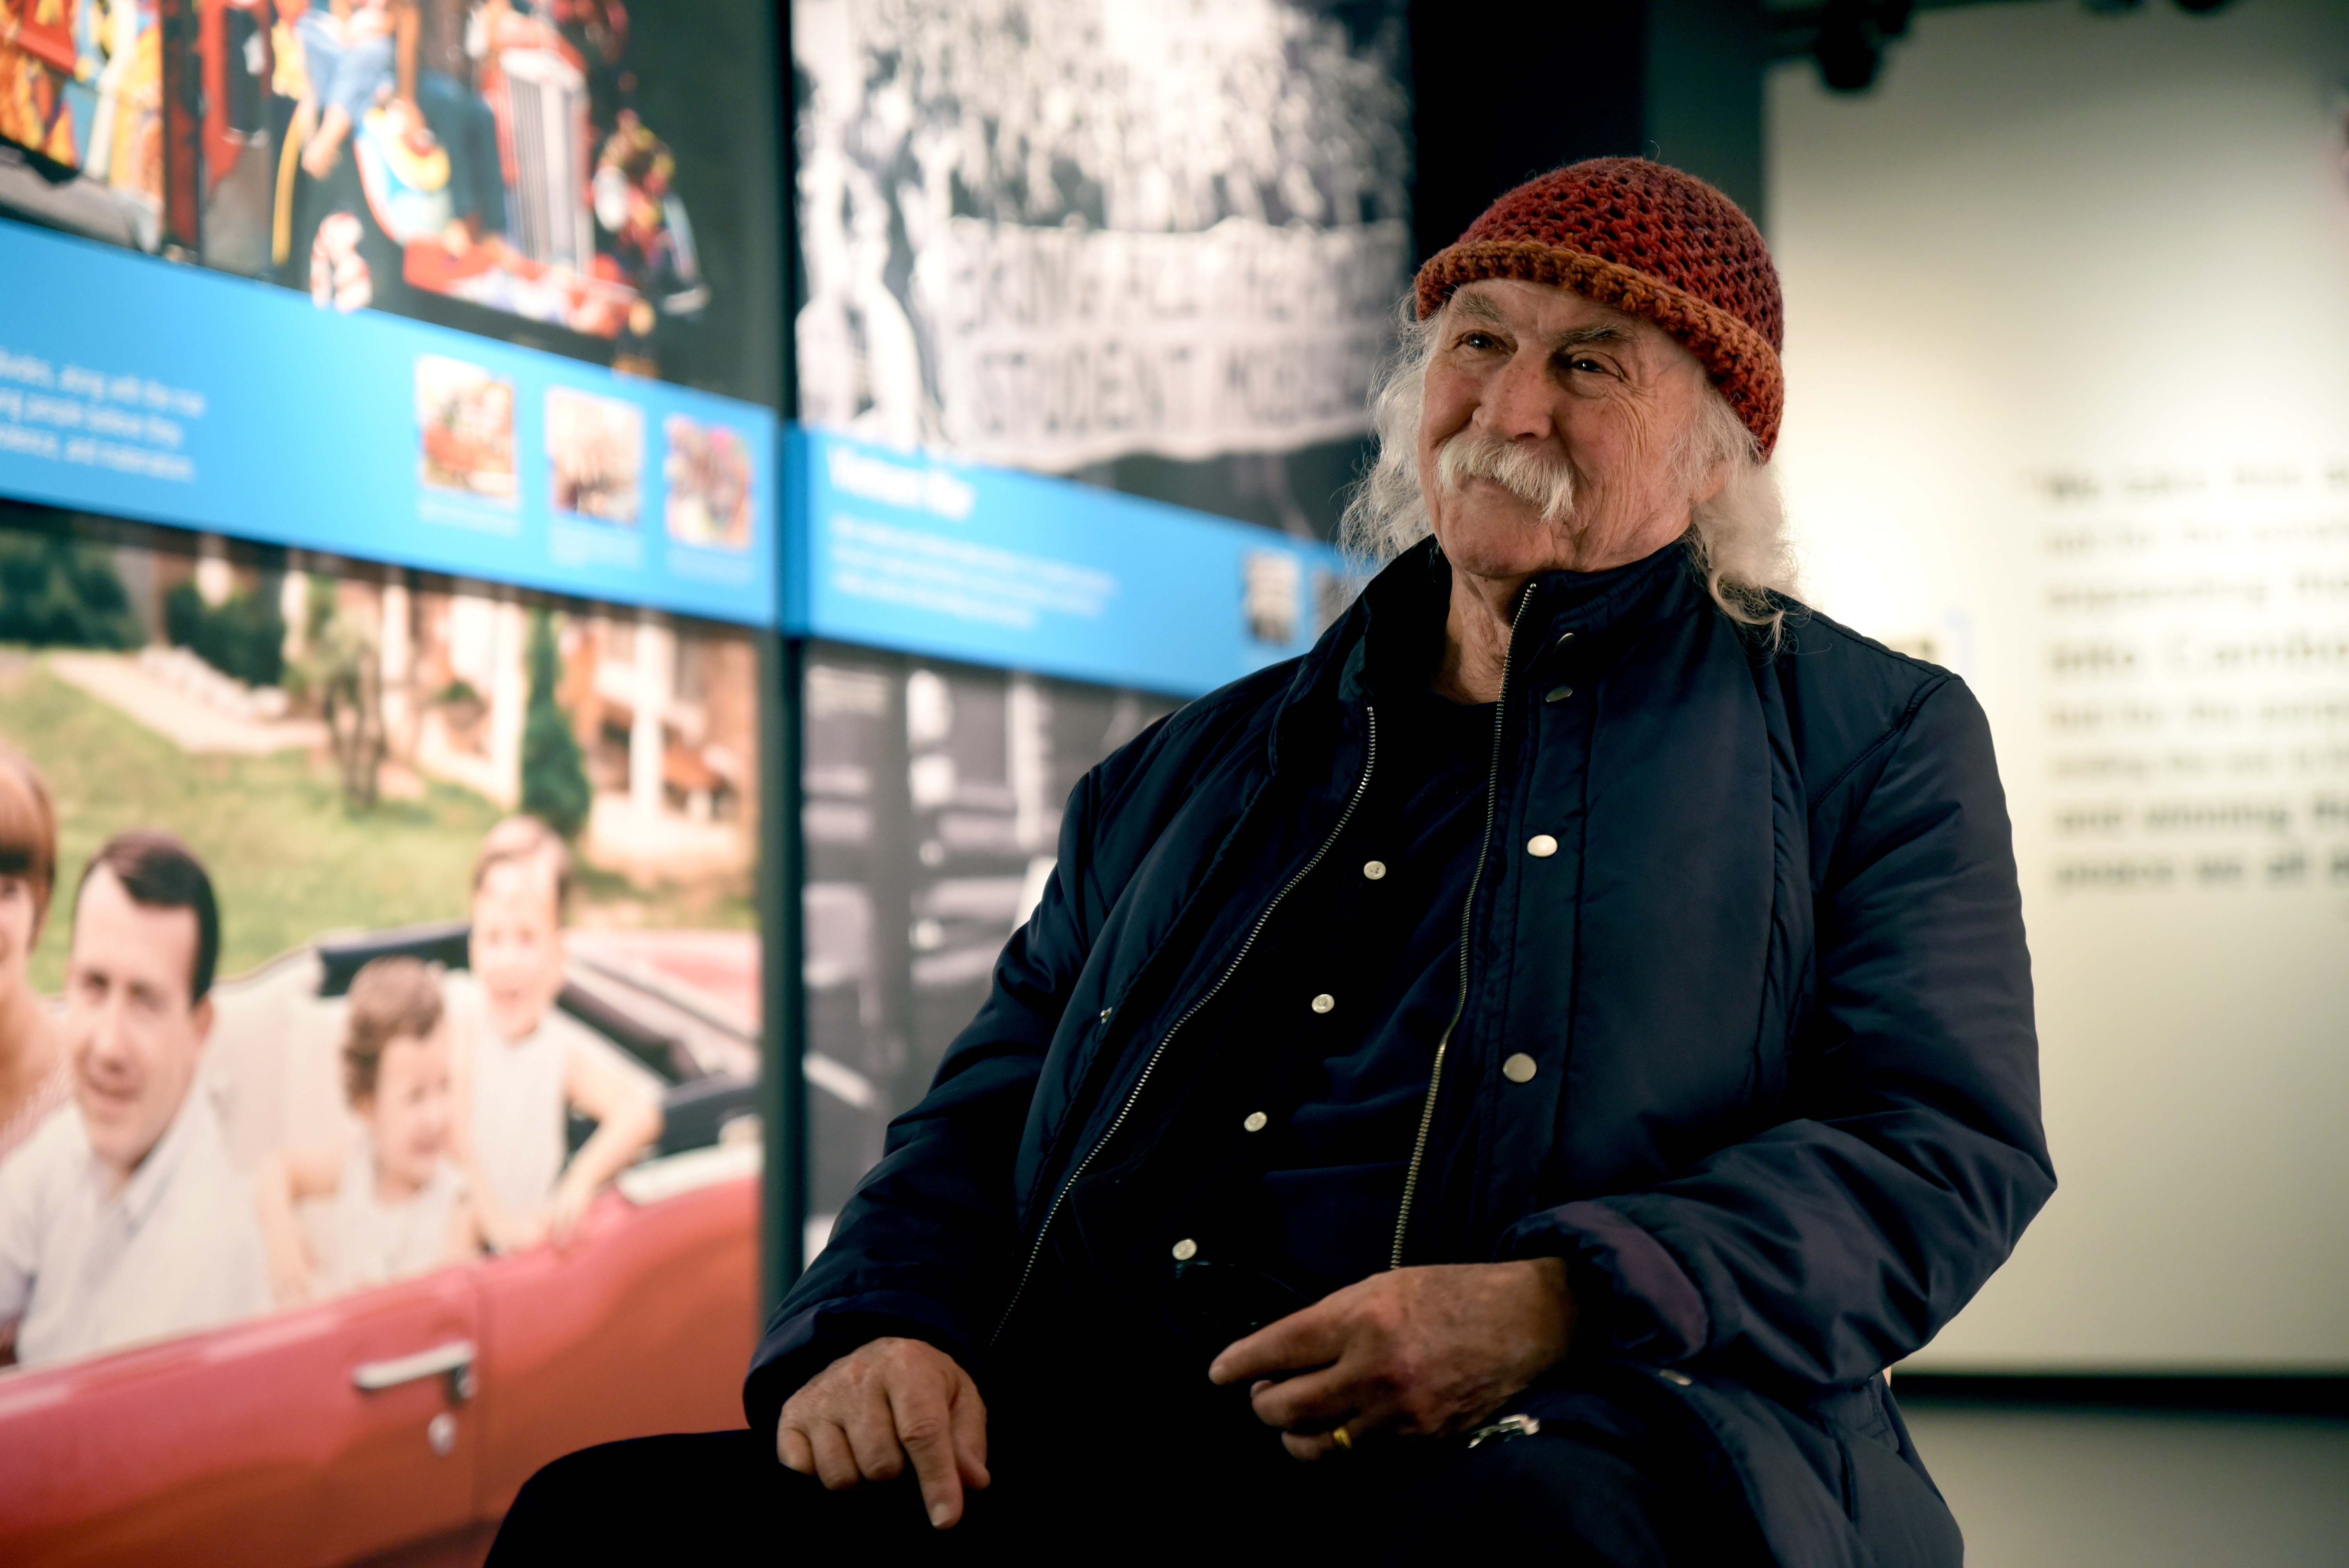 Singer-songwriter David Crosby visits Kent State University's May 4 Visitors Center and reflects on May 4.